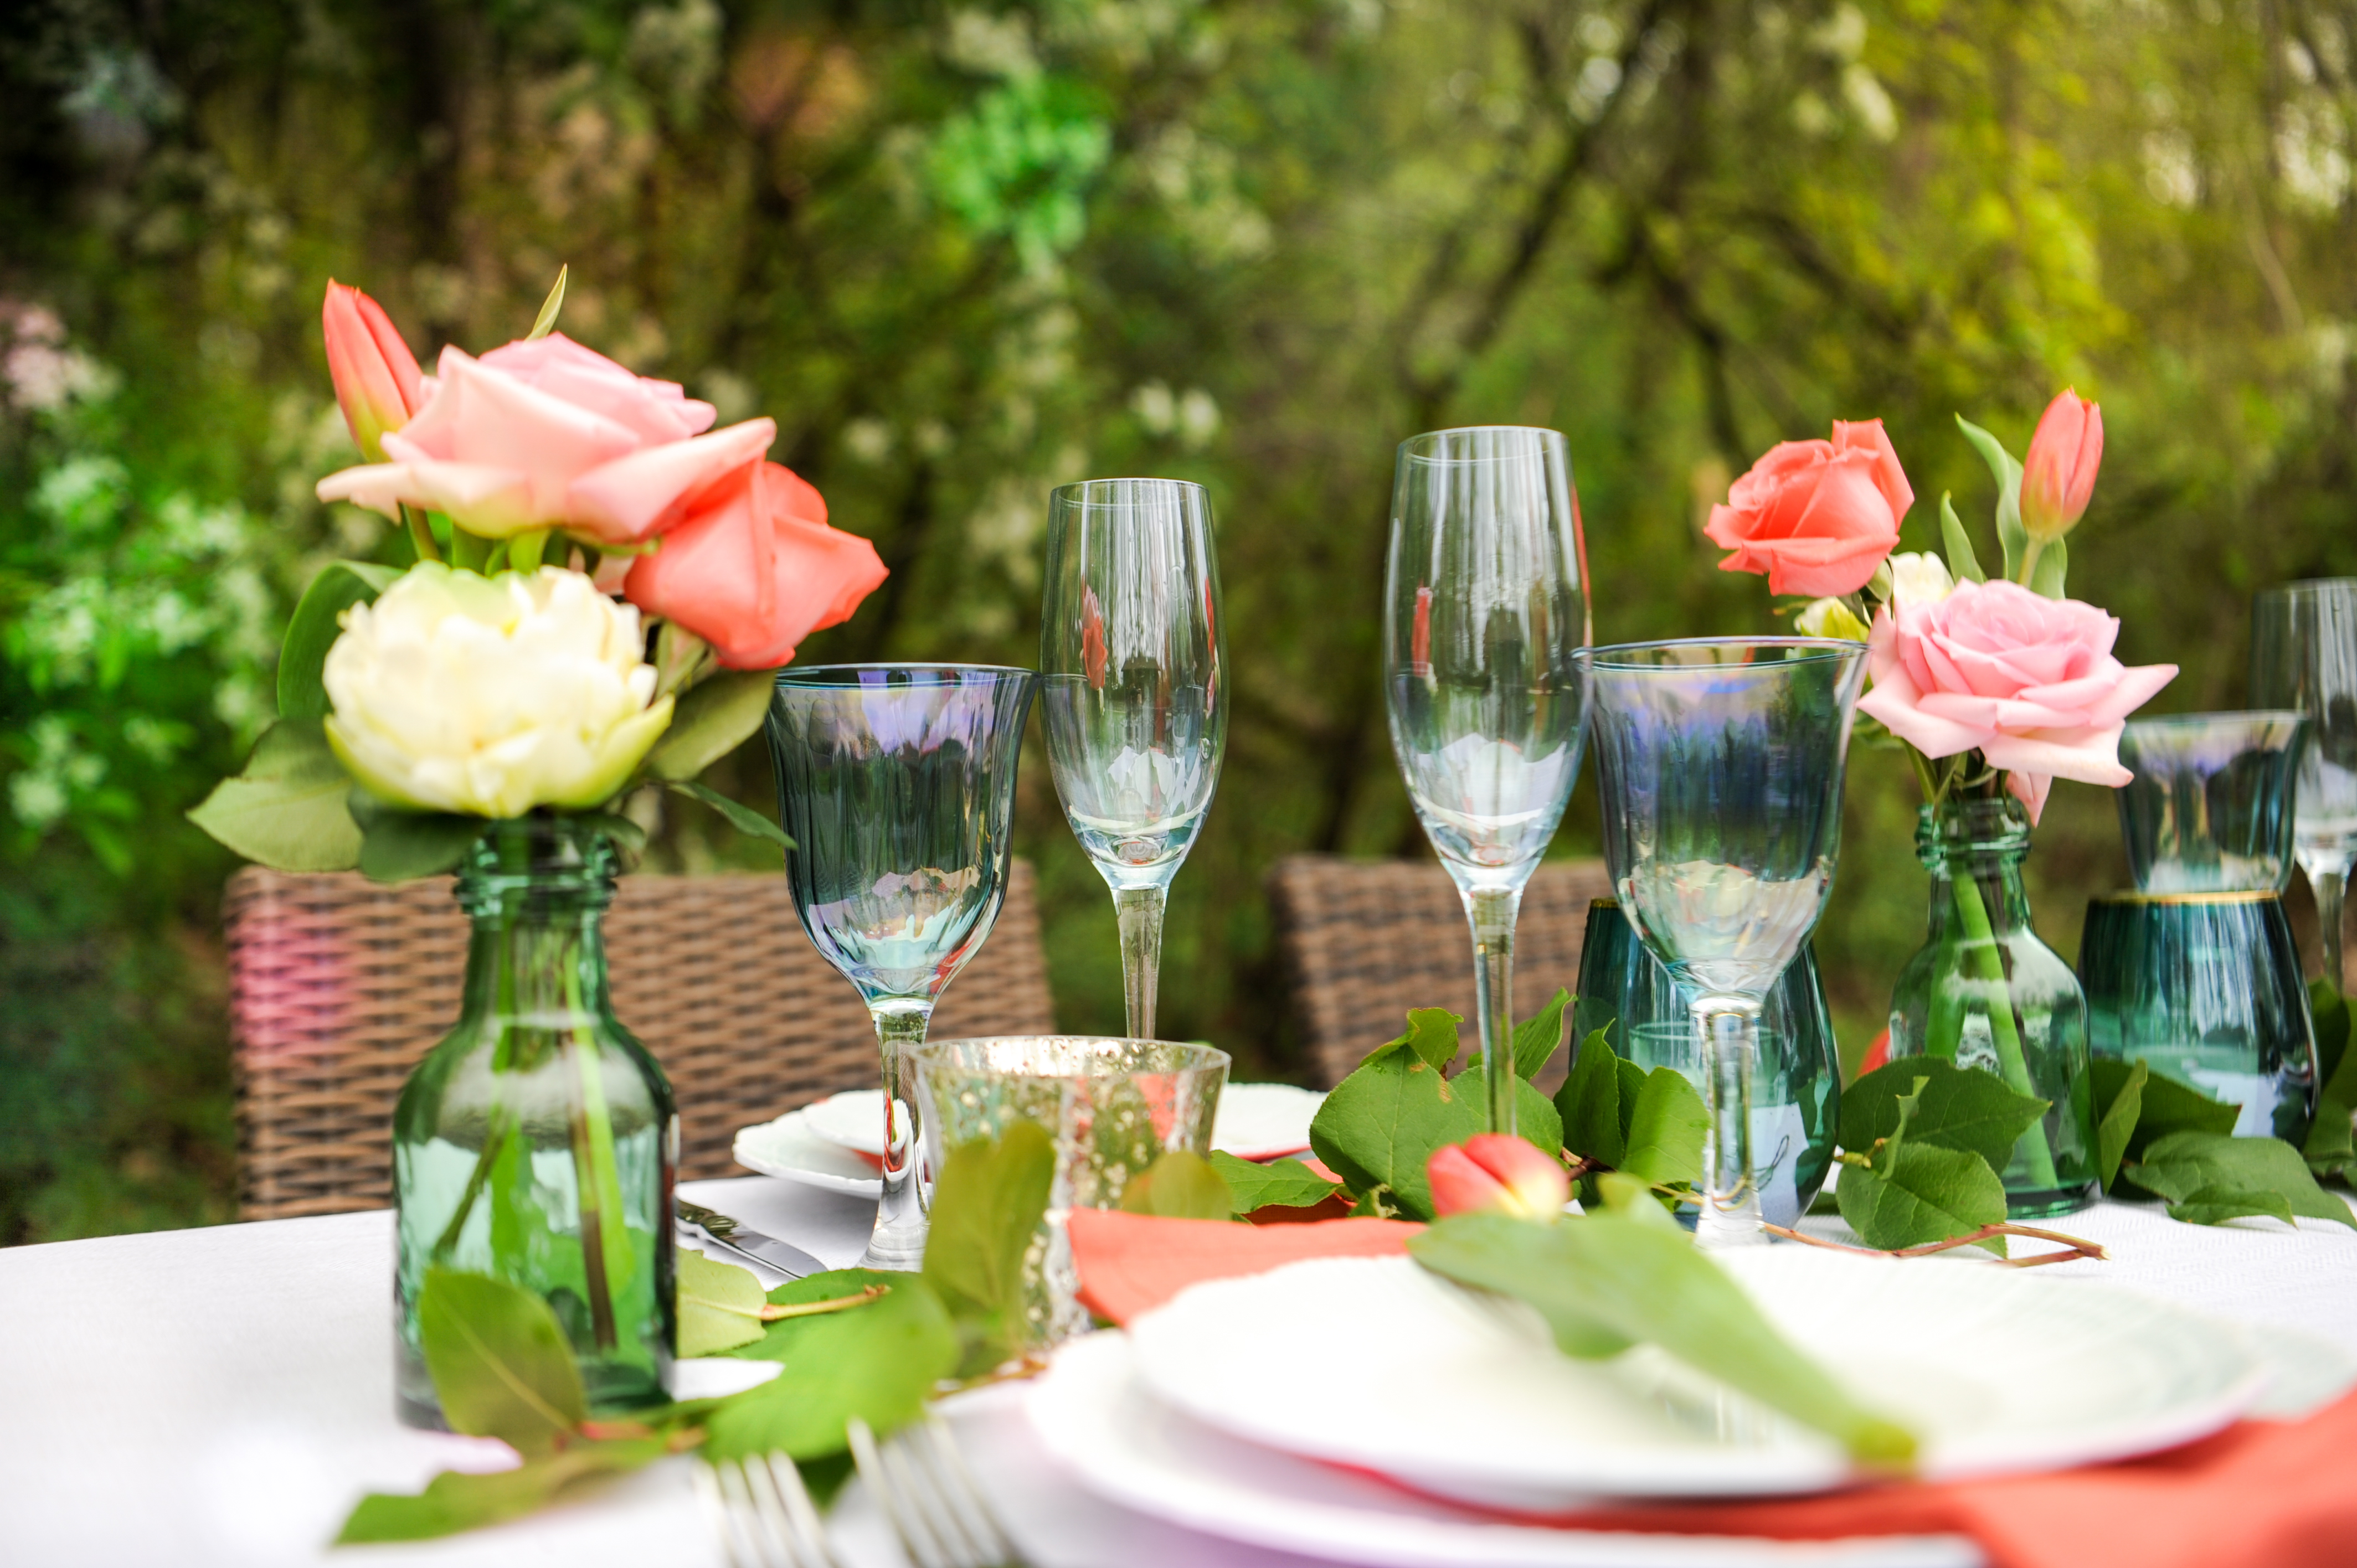 TableSetting2019-1001